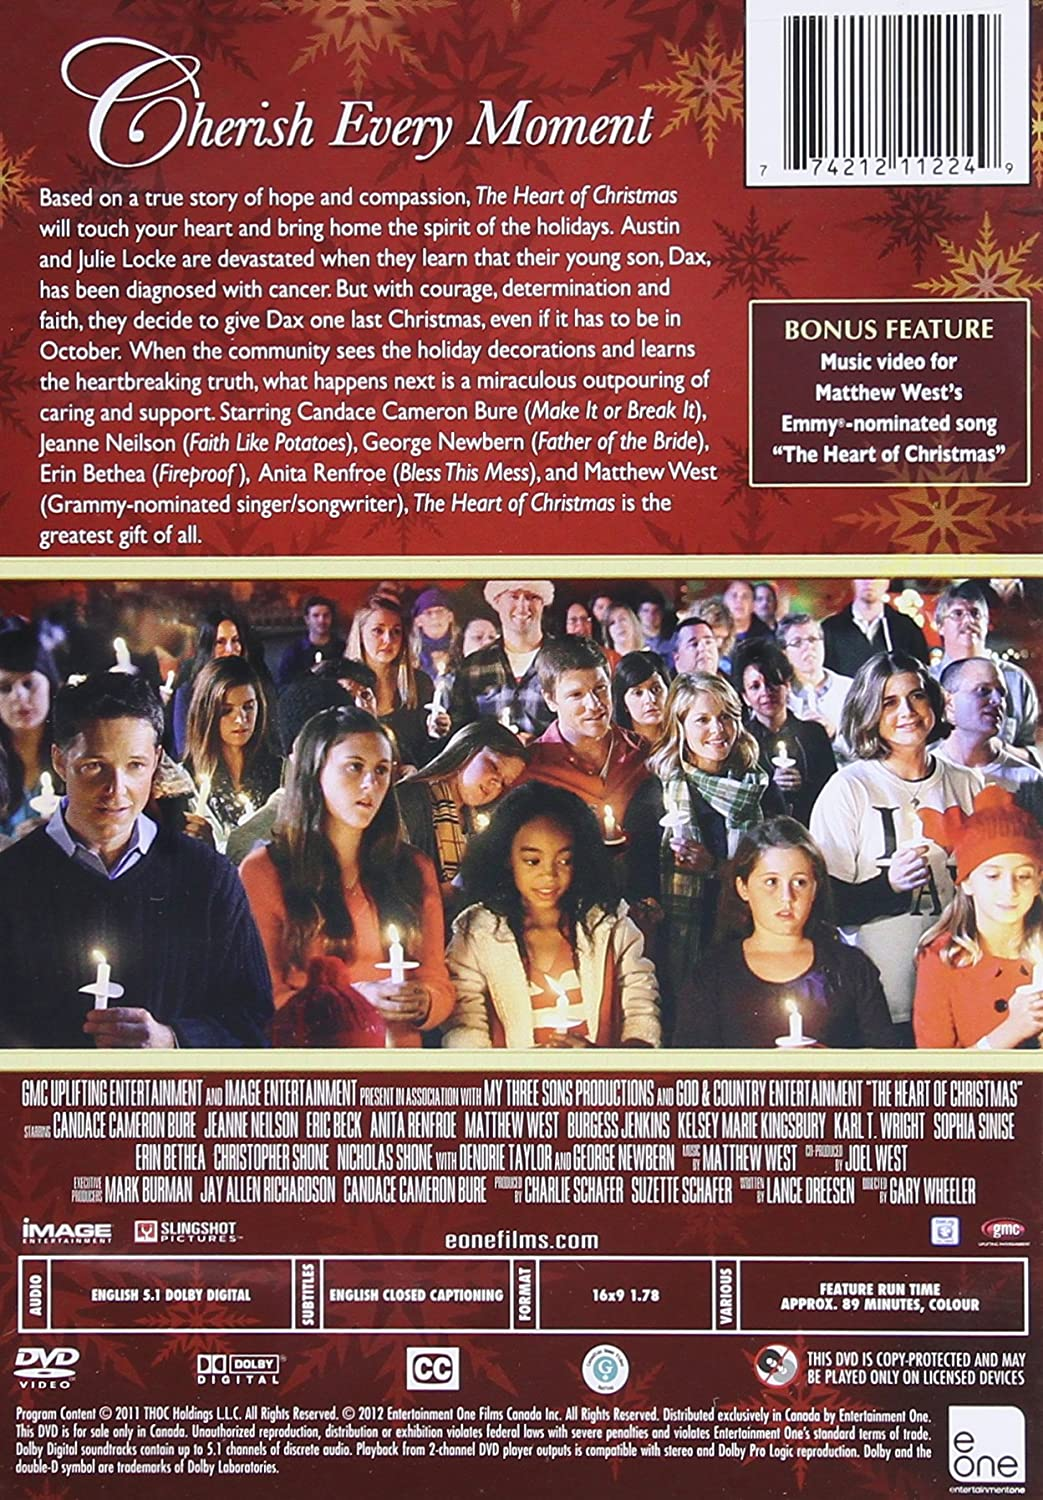 amazoncom heart of christmas candace cameron bure jeanne neilson erin bethea george newbern matthew west gary wheeler movies tv